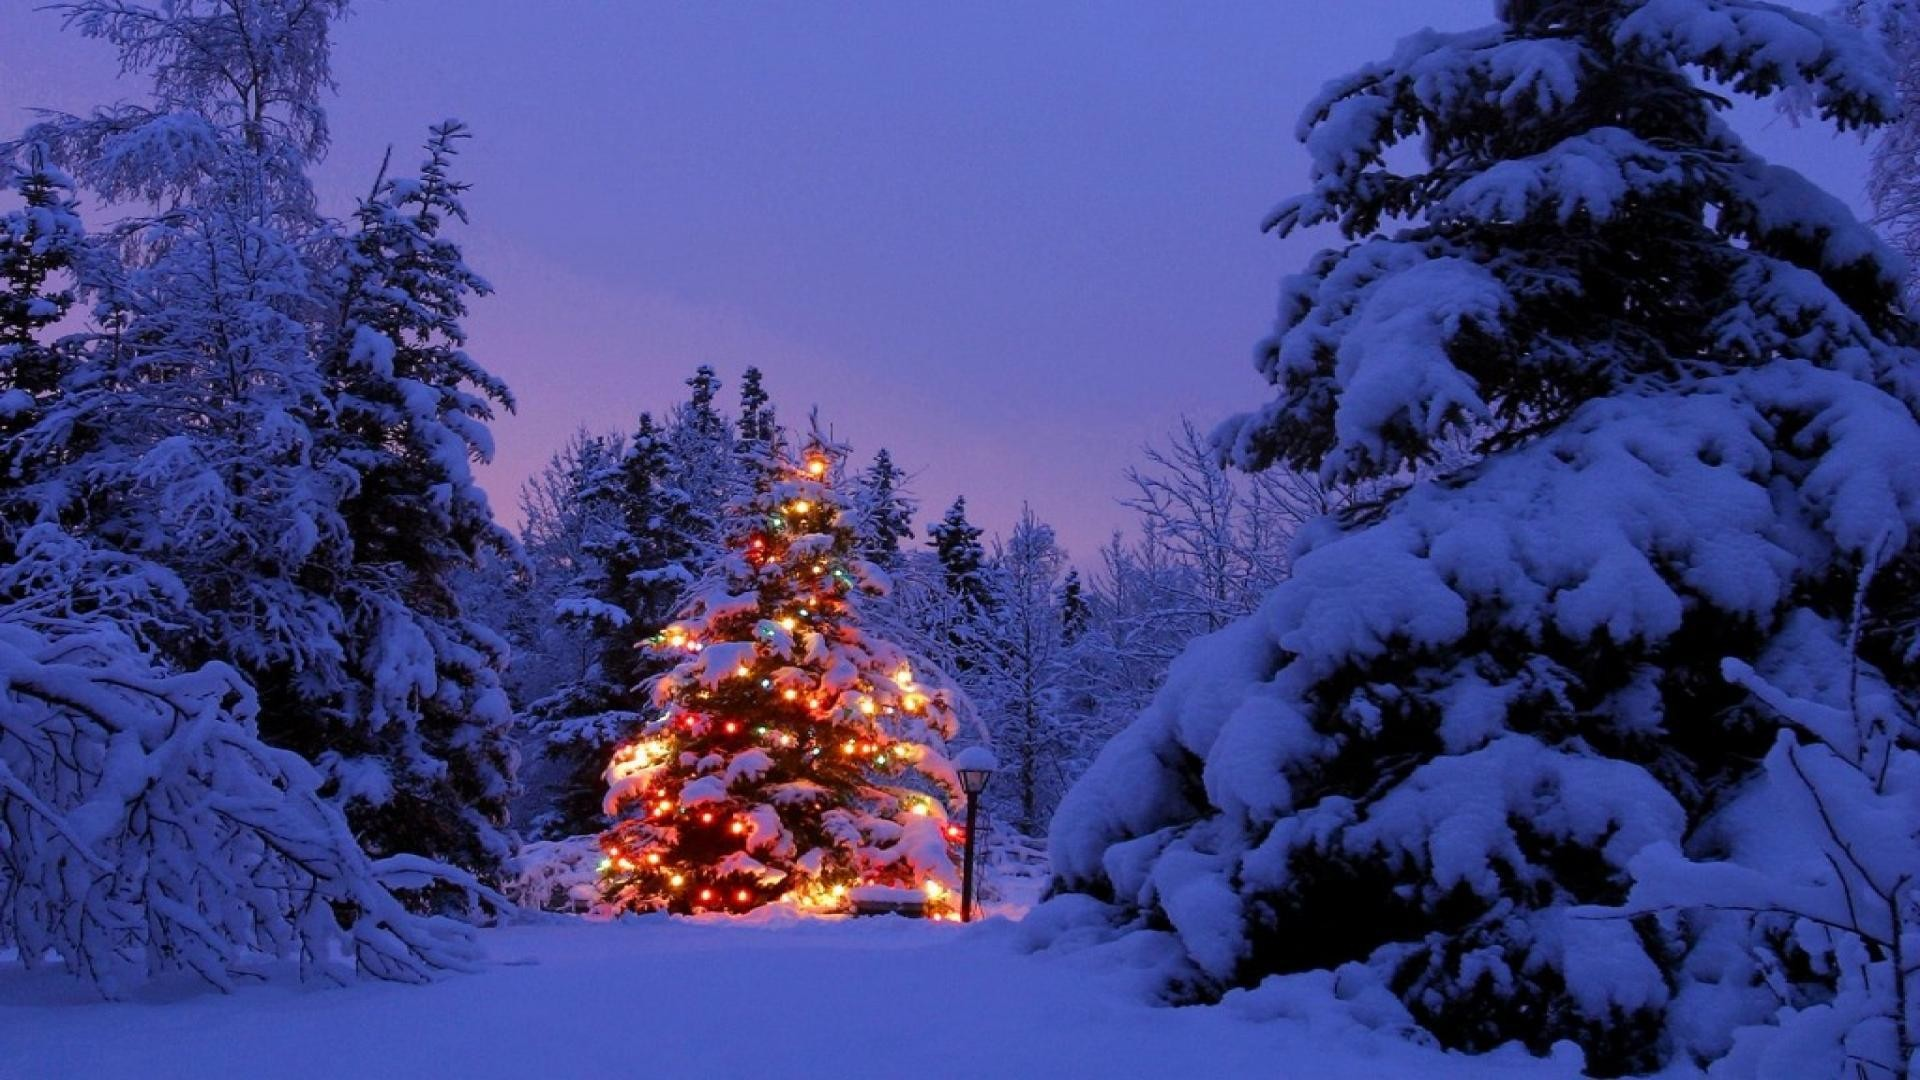 Wallpapers For > Christmas Scenery Backgrounds